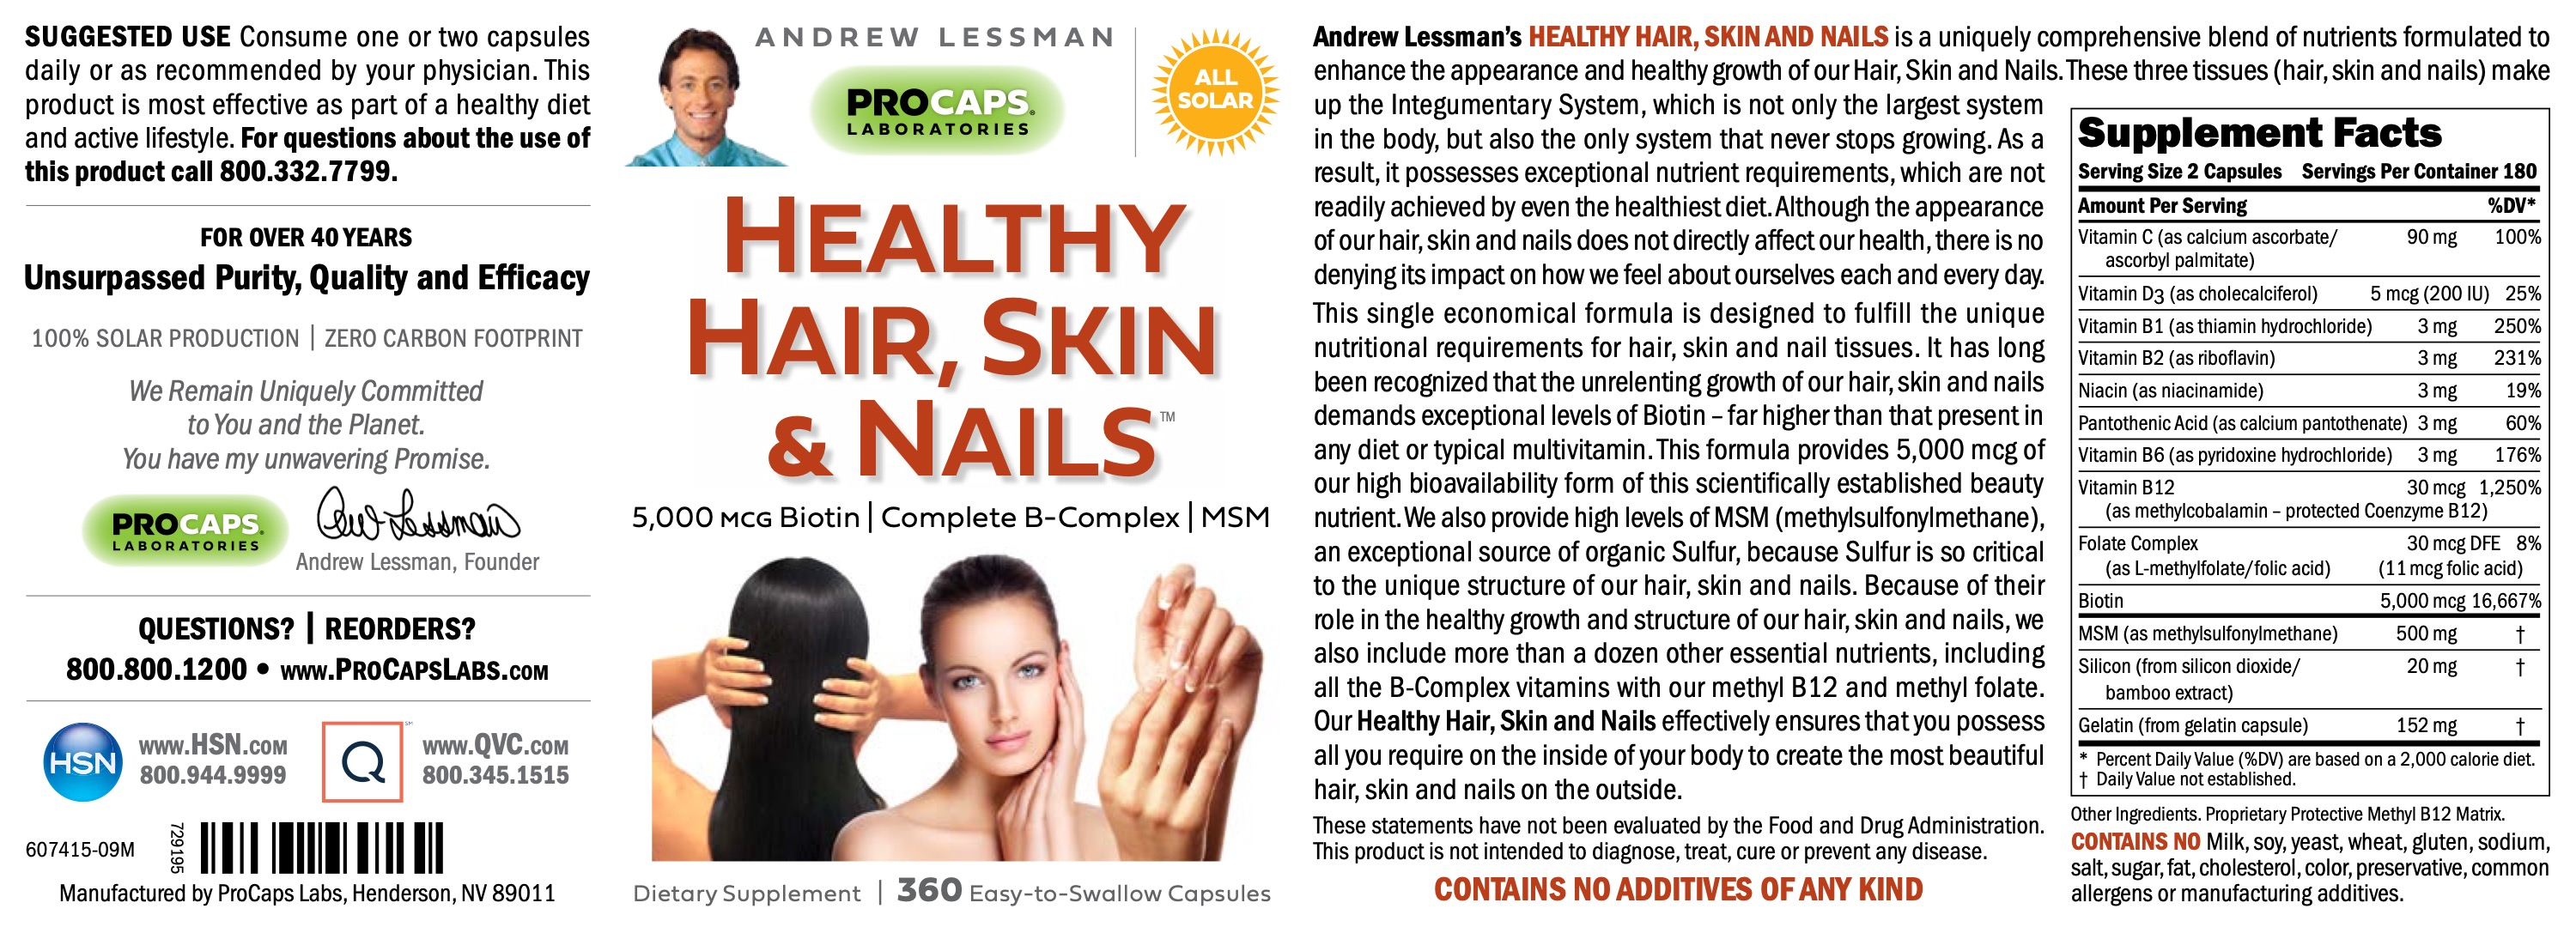 Healthy-Hair-Skin-And-Nails-with-5-000-mcg-Biotin-Capsules-Beauty